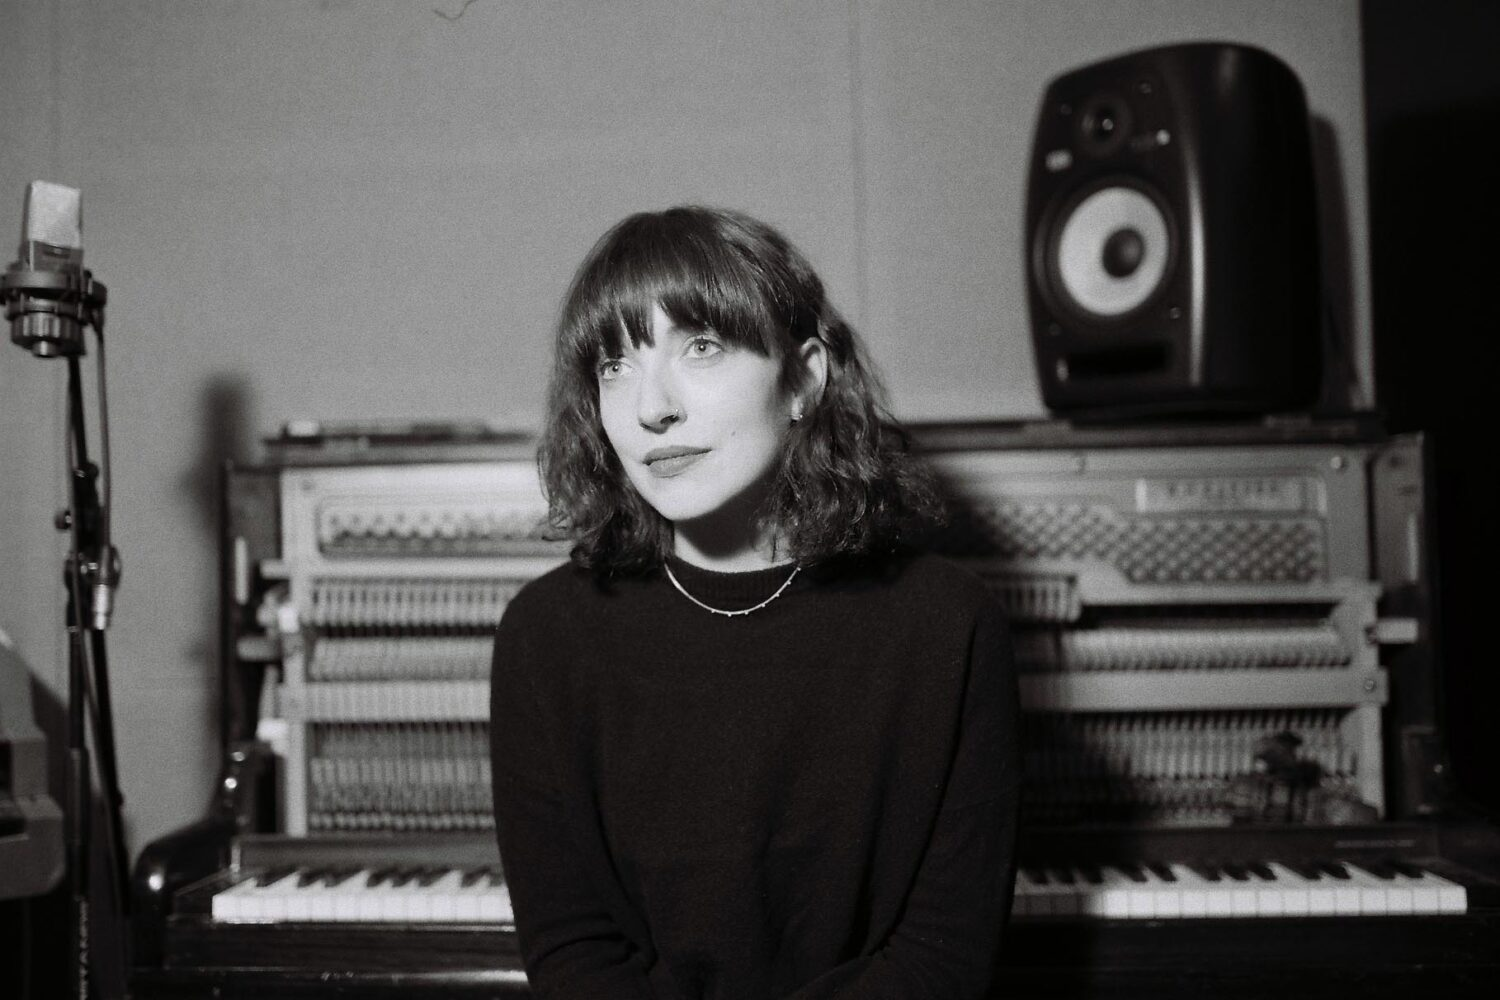 Daughter's Elena Tonra on the heartbreak and catharsis of her debut solo album